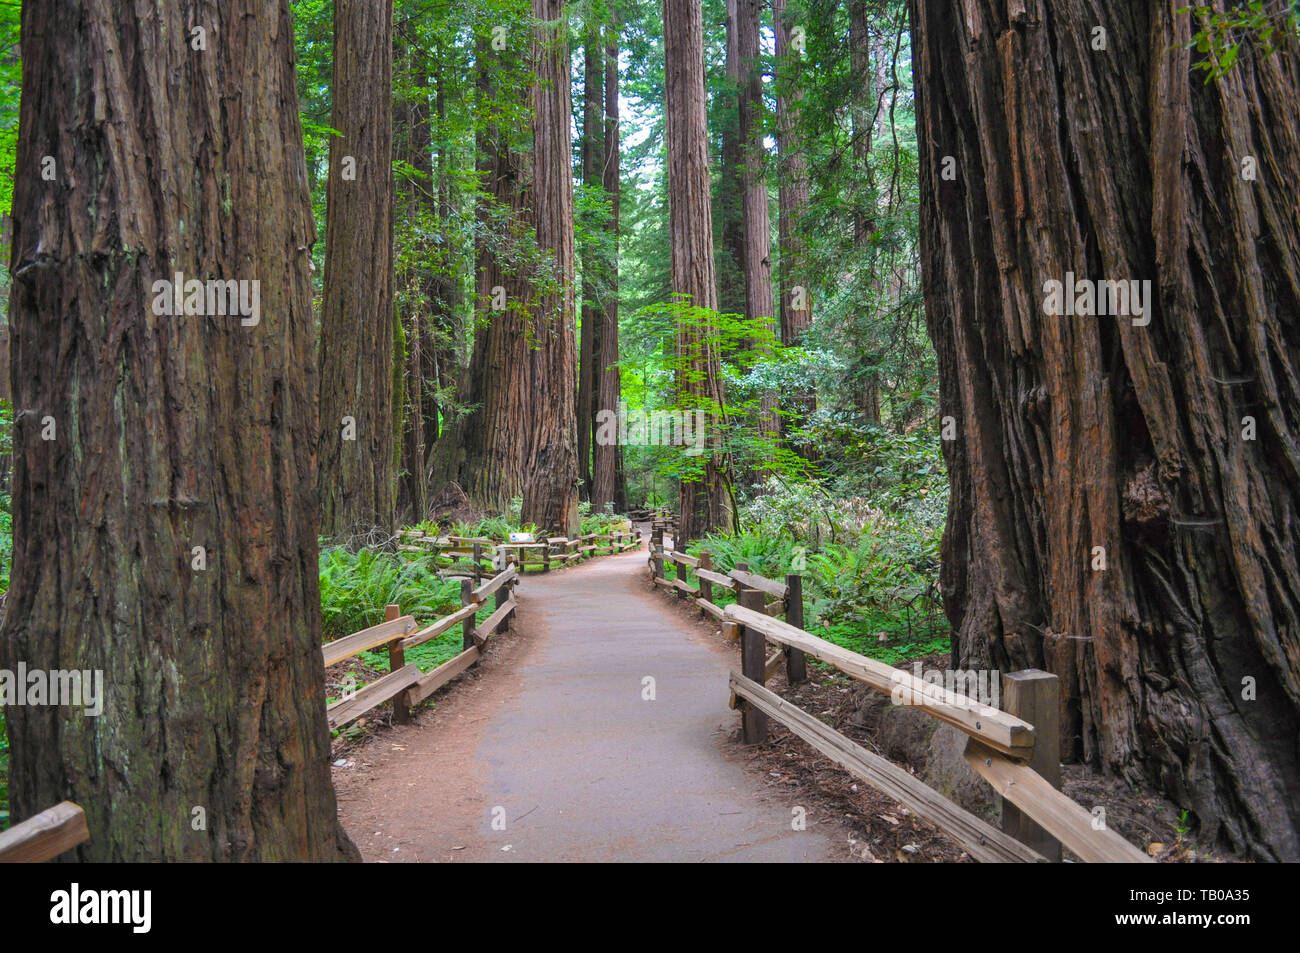 Walking along the path through the California redwoods - Stock Image